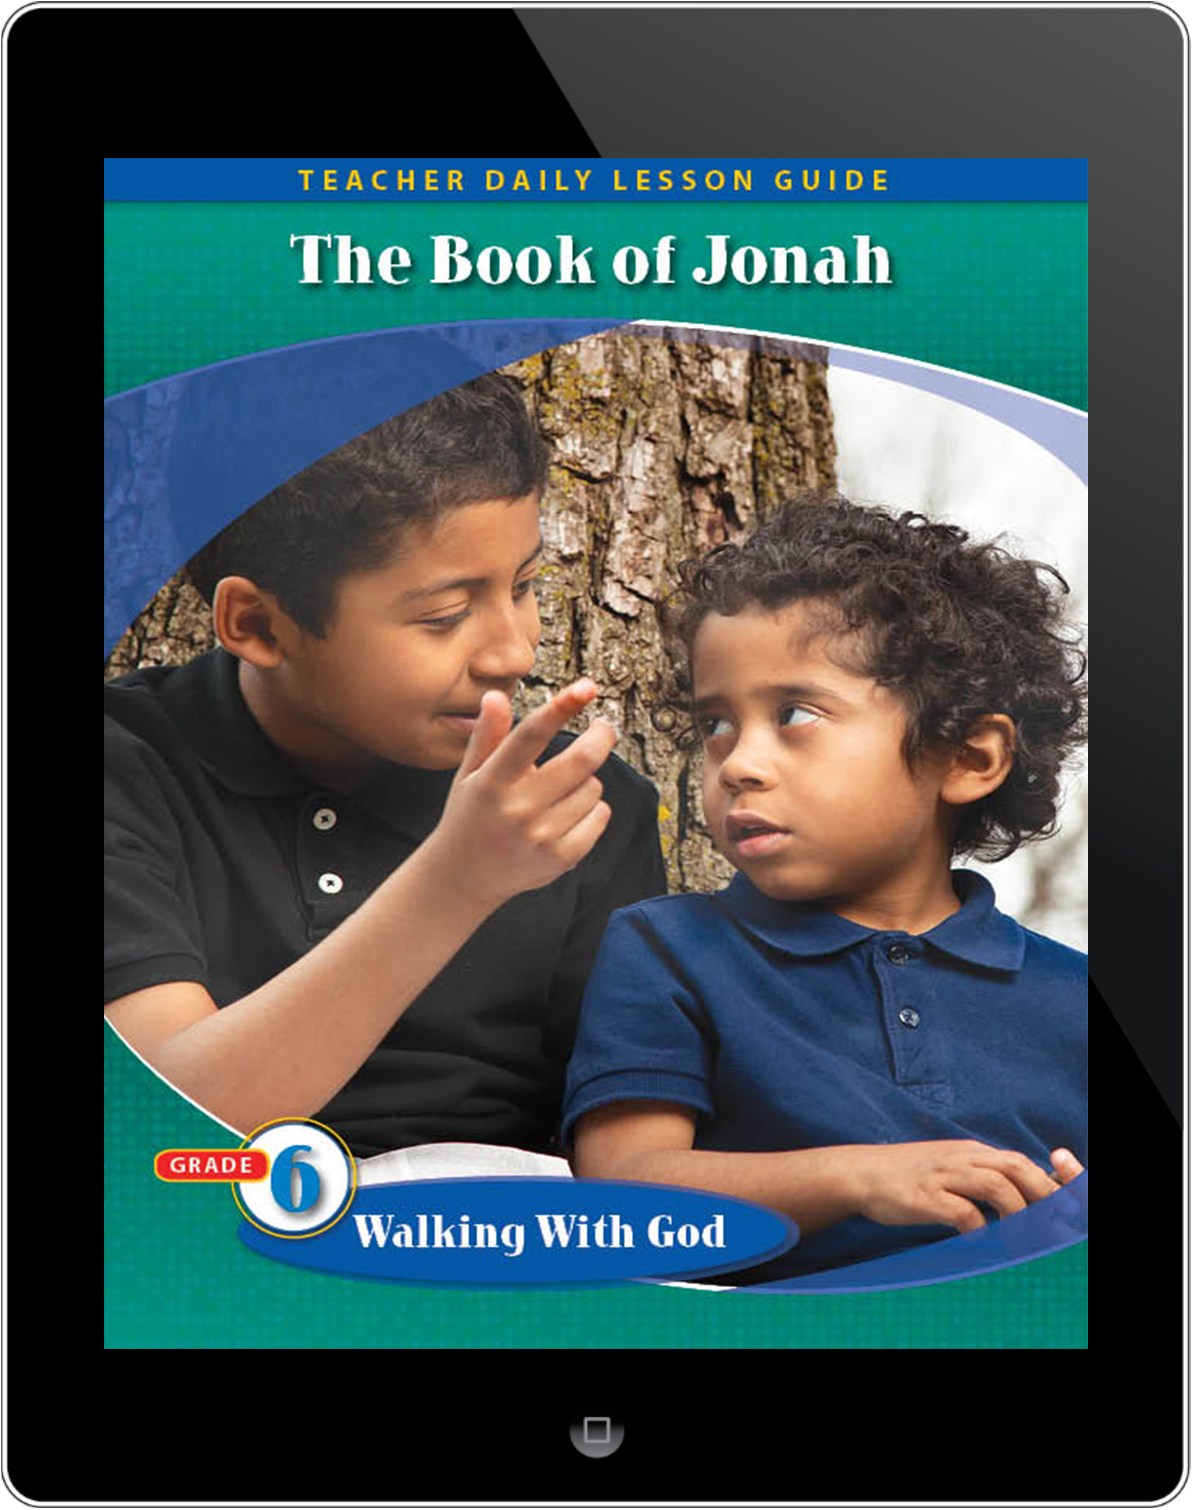 Pathways2.0 Grade 6 Walking with God Unit: Jonah Daily Lesson Guide 5 Year License